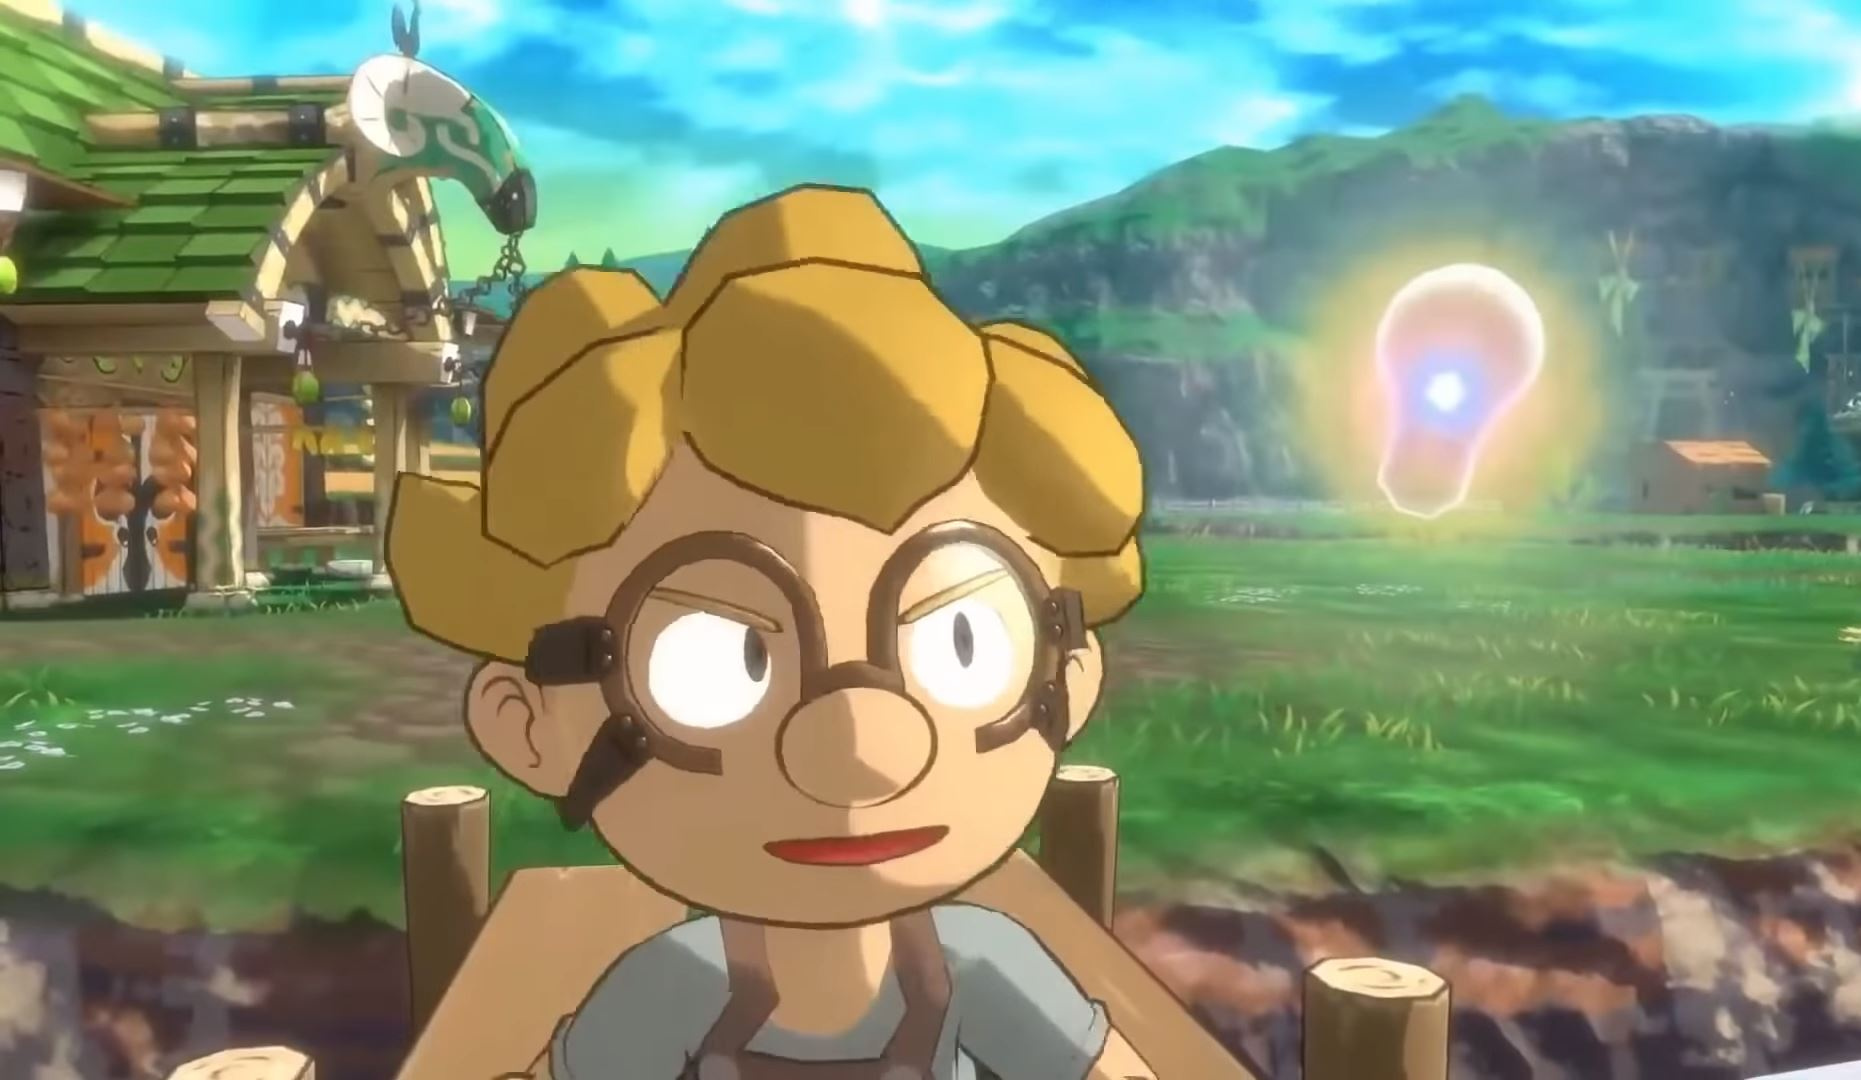 Game Freak Trademark Hints At New Name For Switch RPG, Town